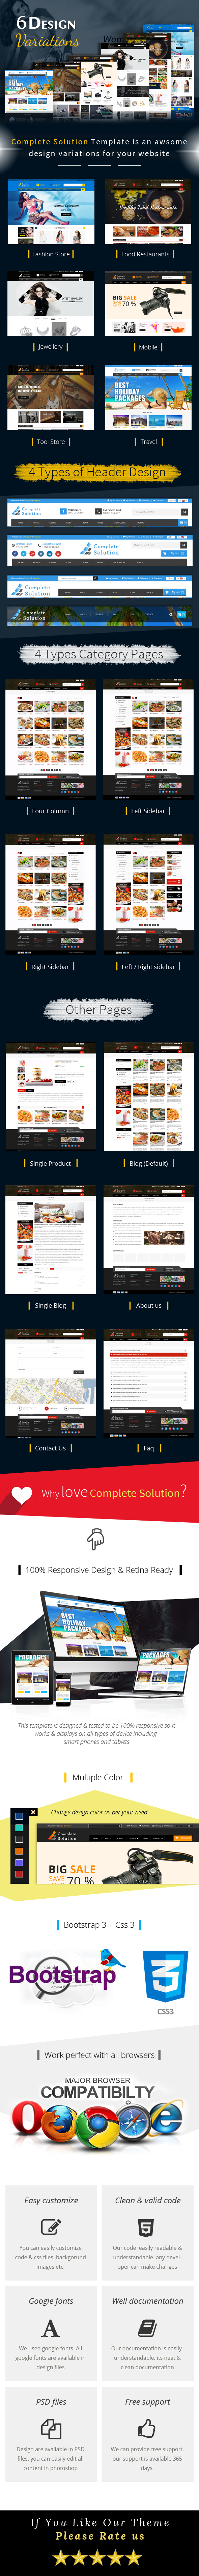 Complete Solution - Multipurpose eCommerce Html Template - 1